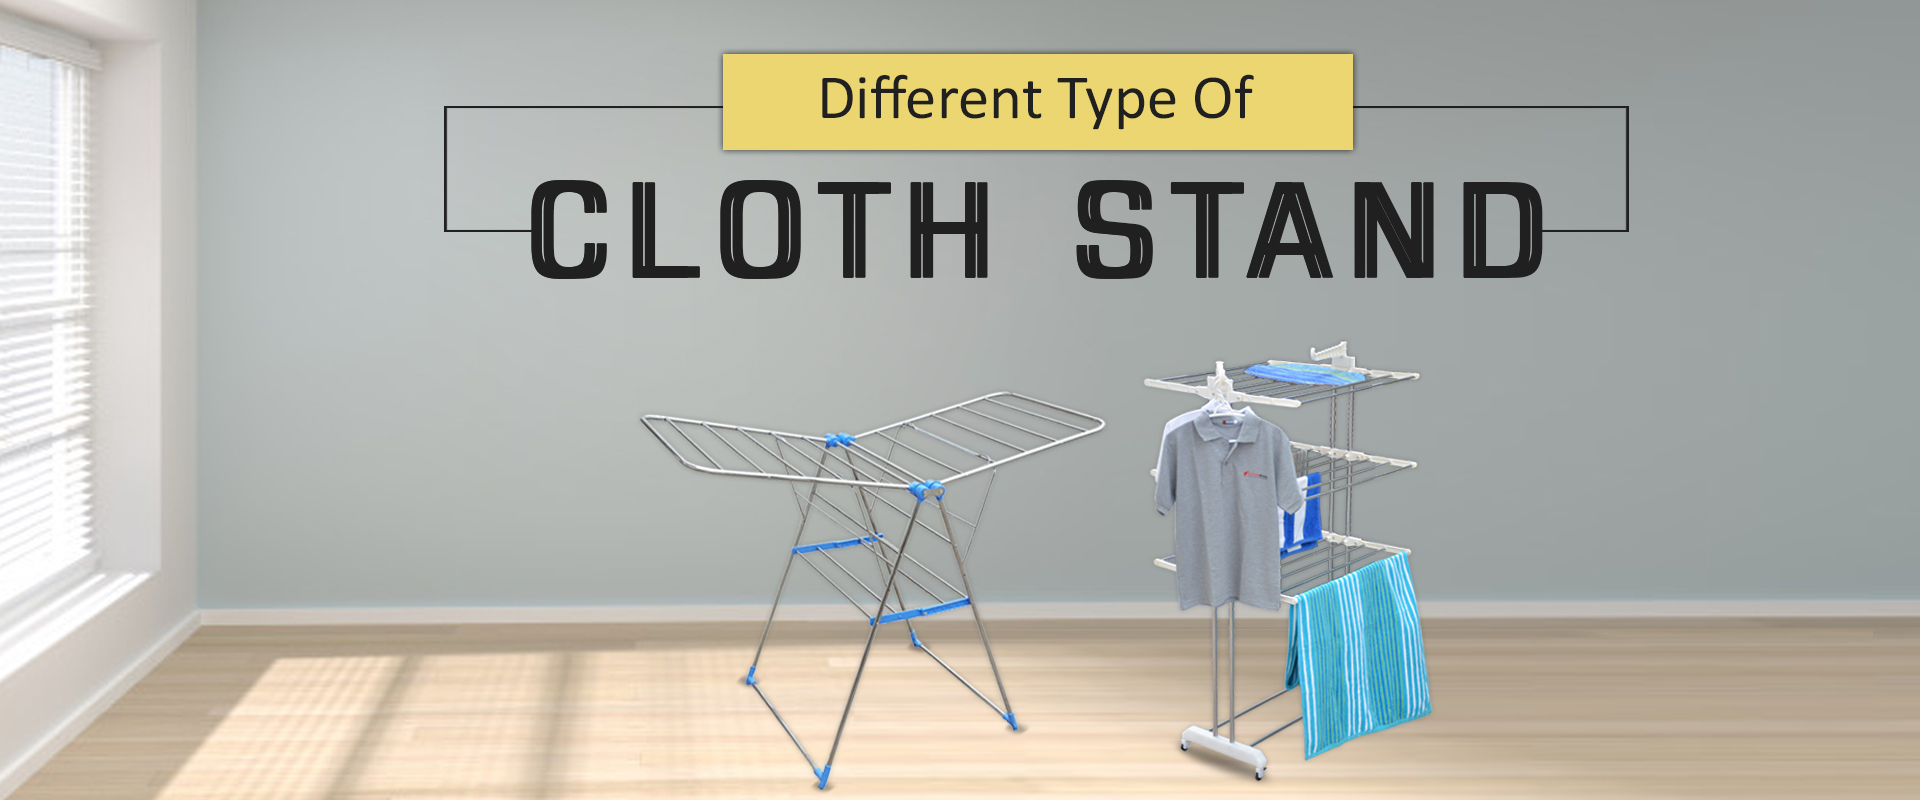 Cloth Stand In Ohio